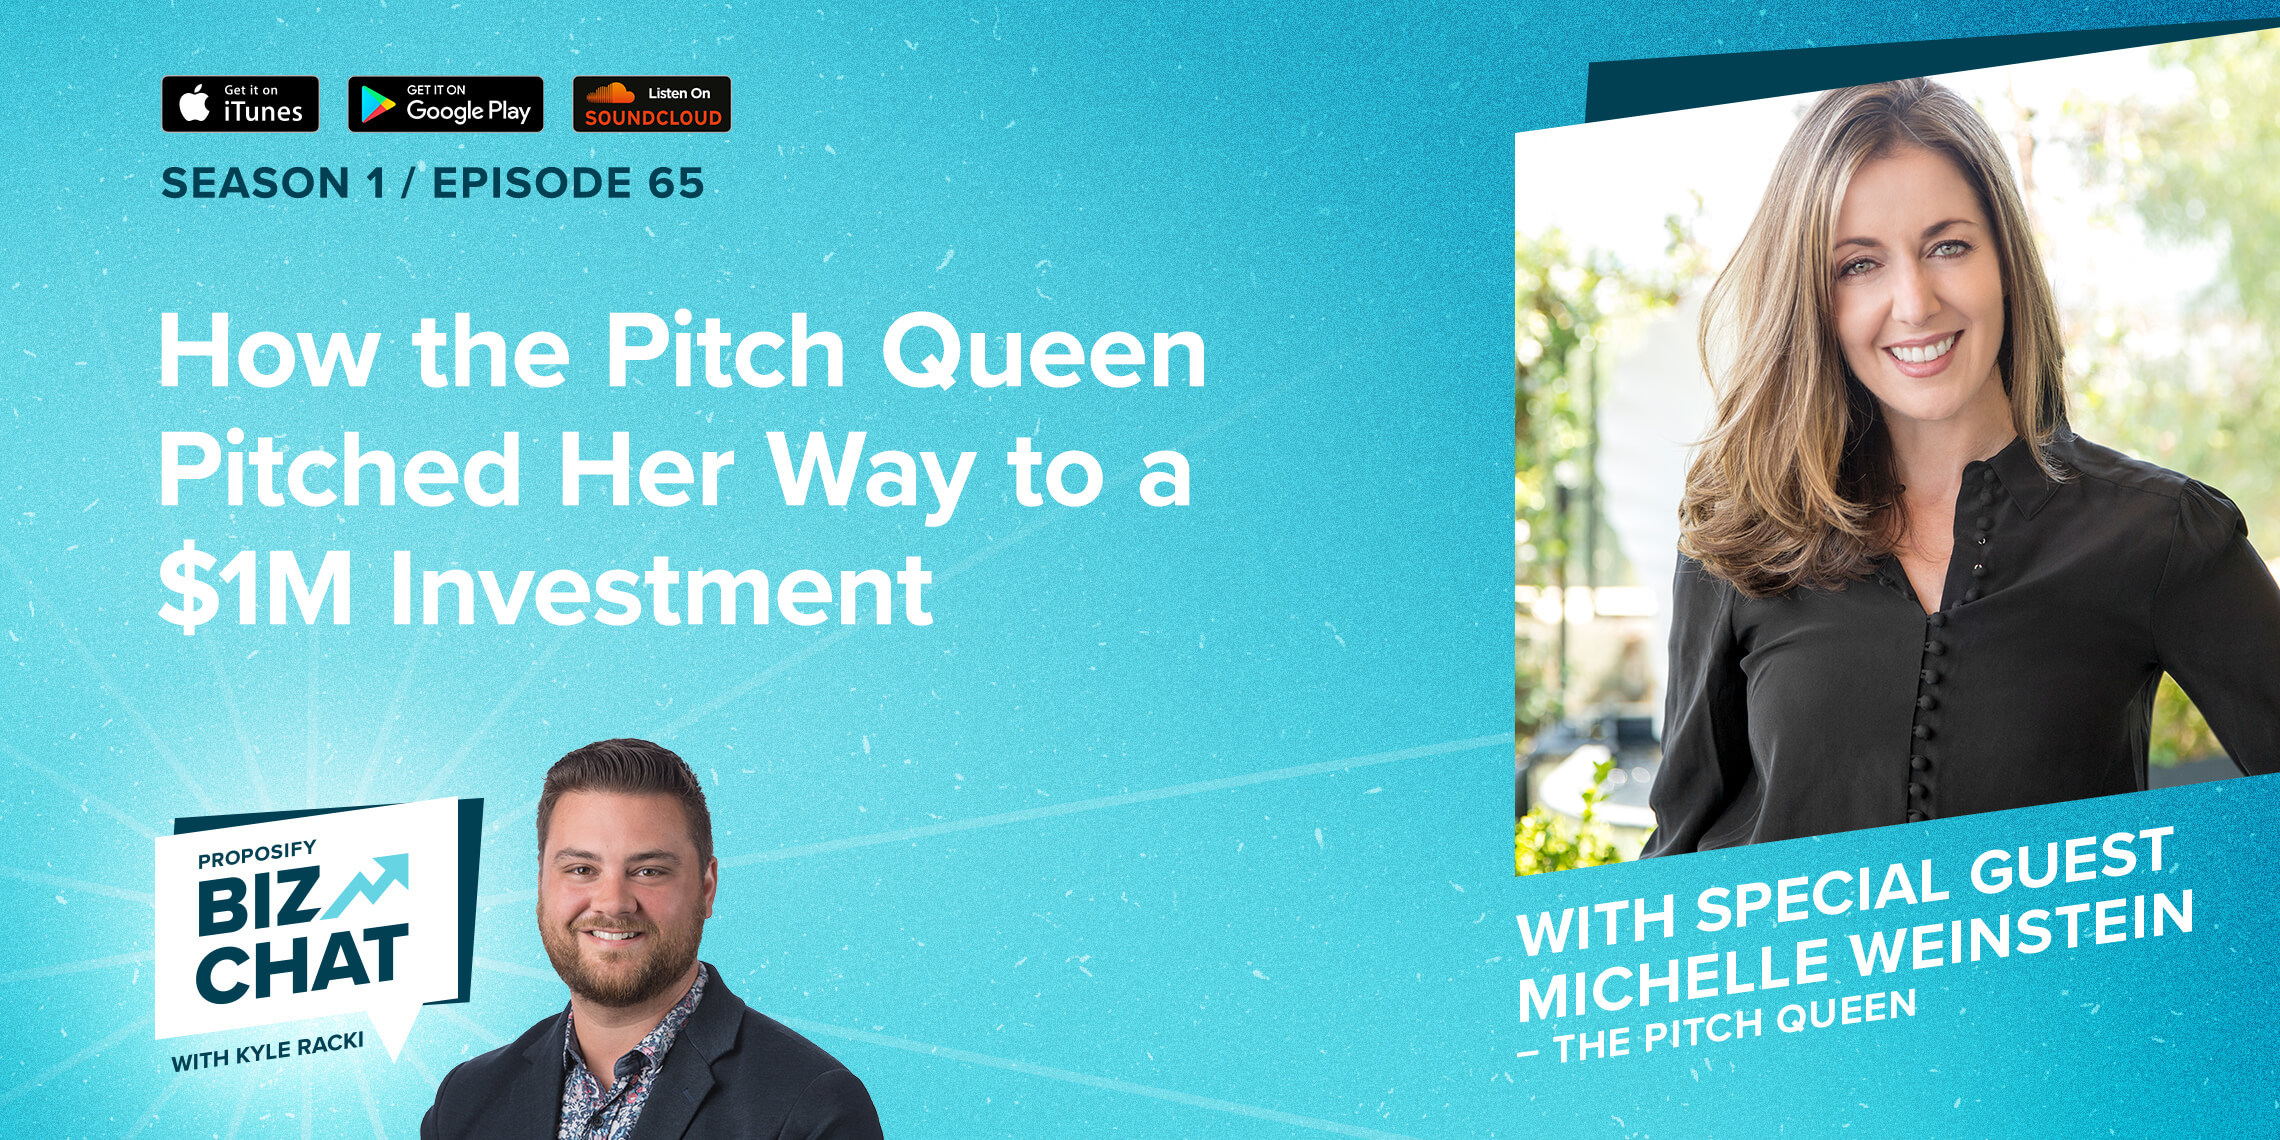 How the Pitch Queen Pitched Her Way to a $1M Investment